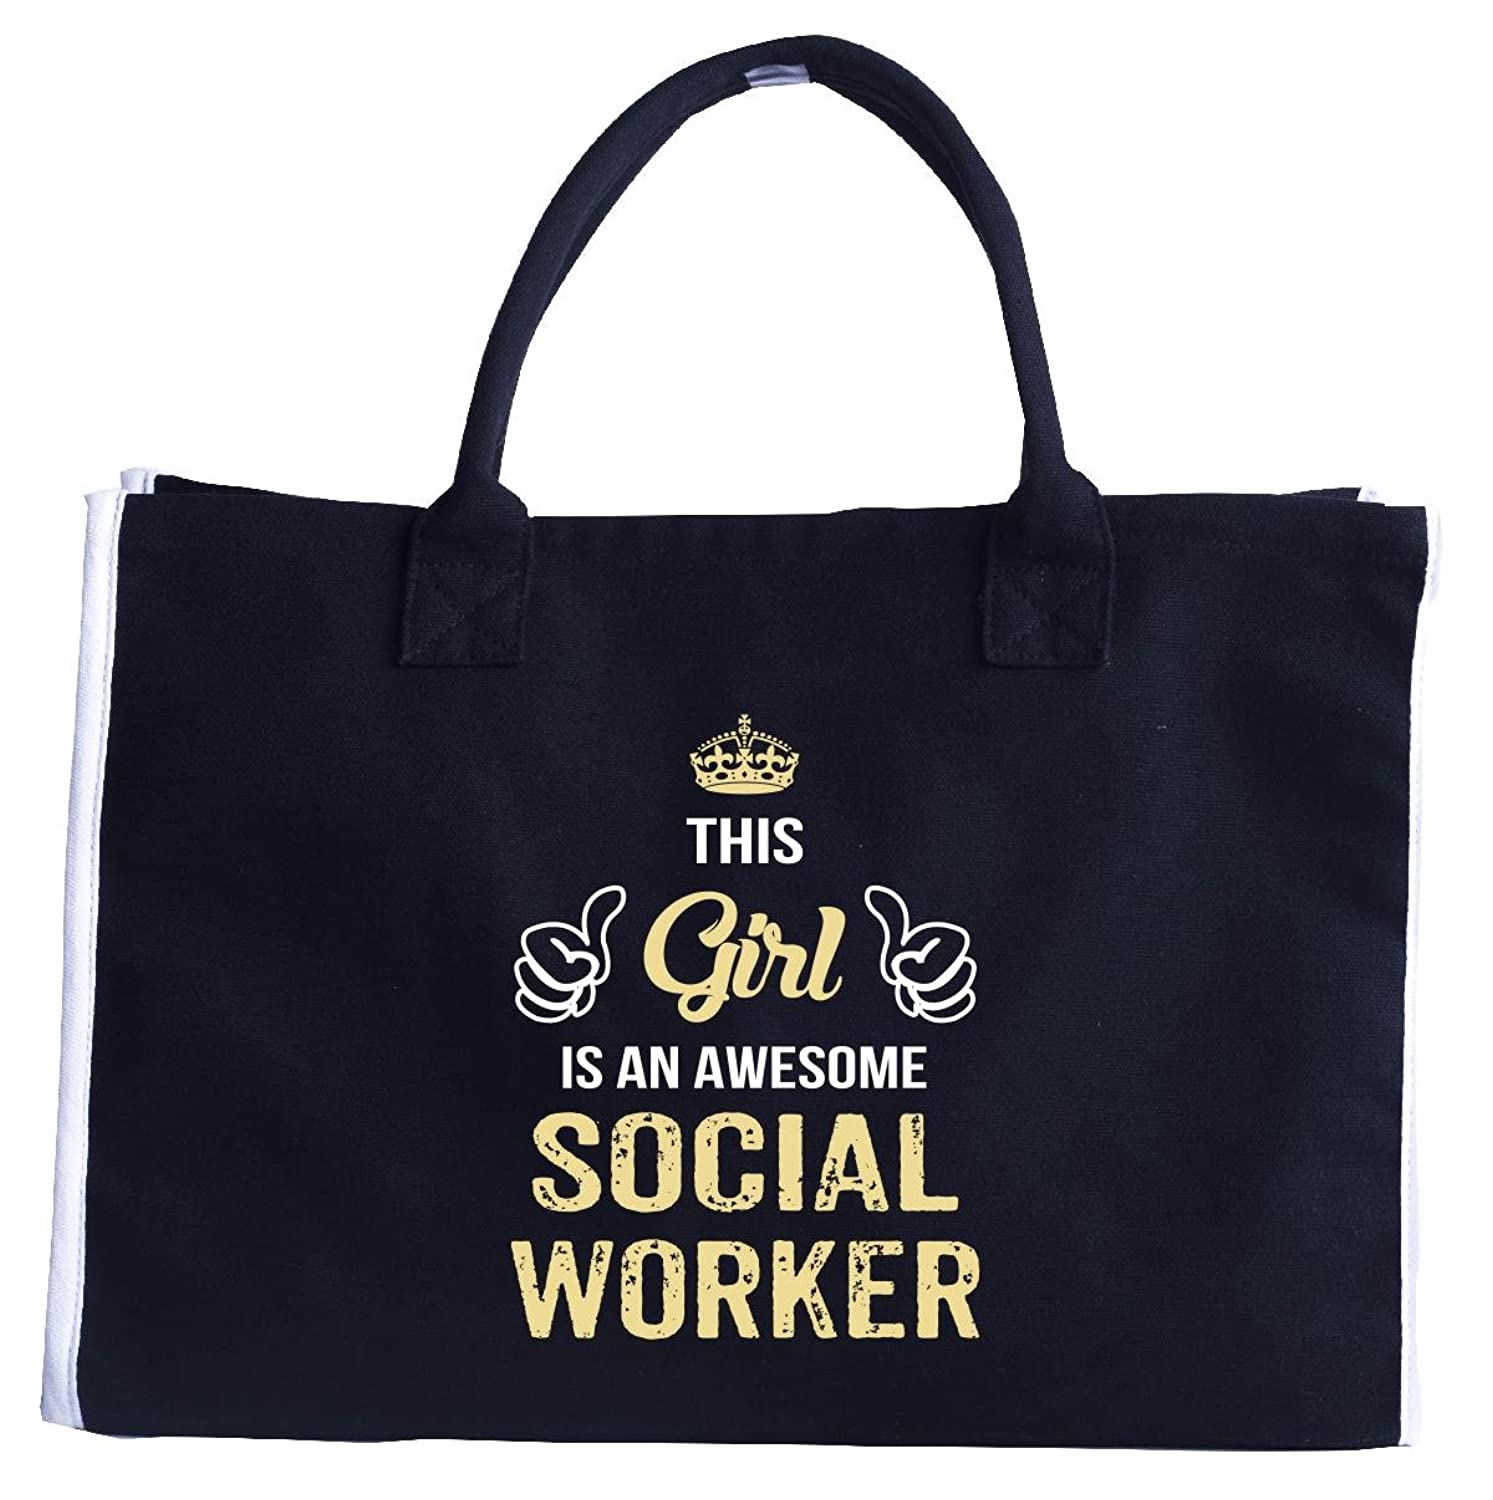 This Girl Is An Awesome Social Worker. Cool Gift - Fashion Customized Tote Bag